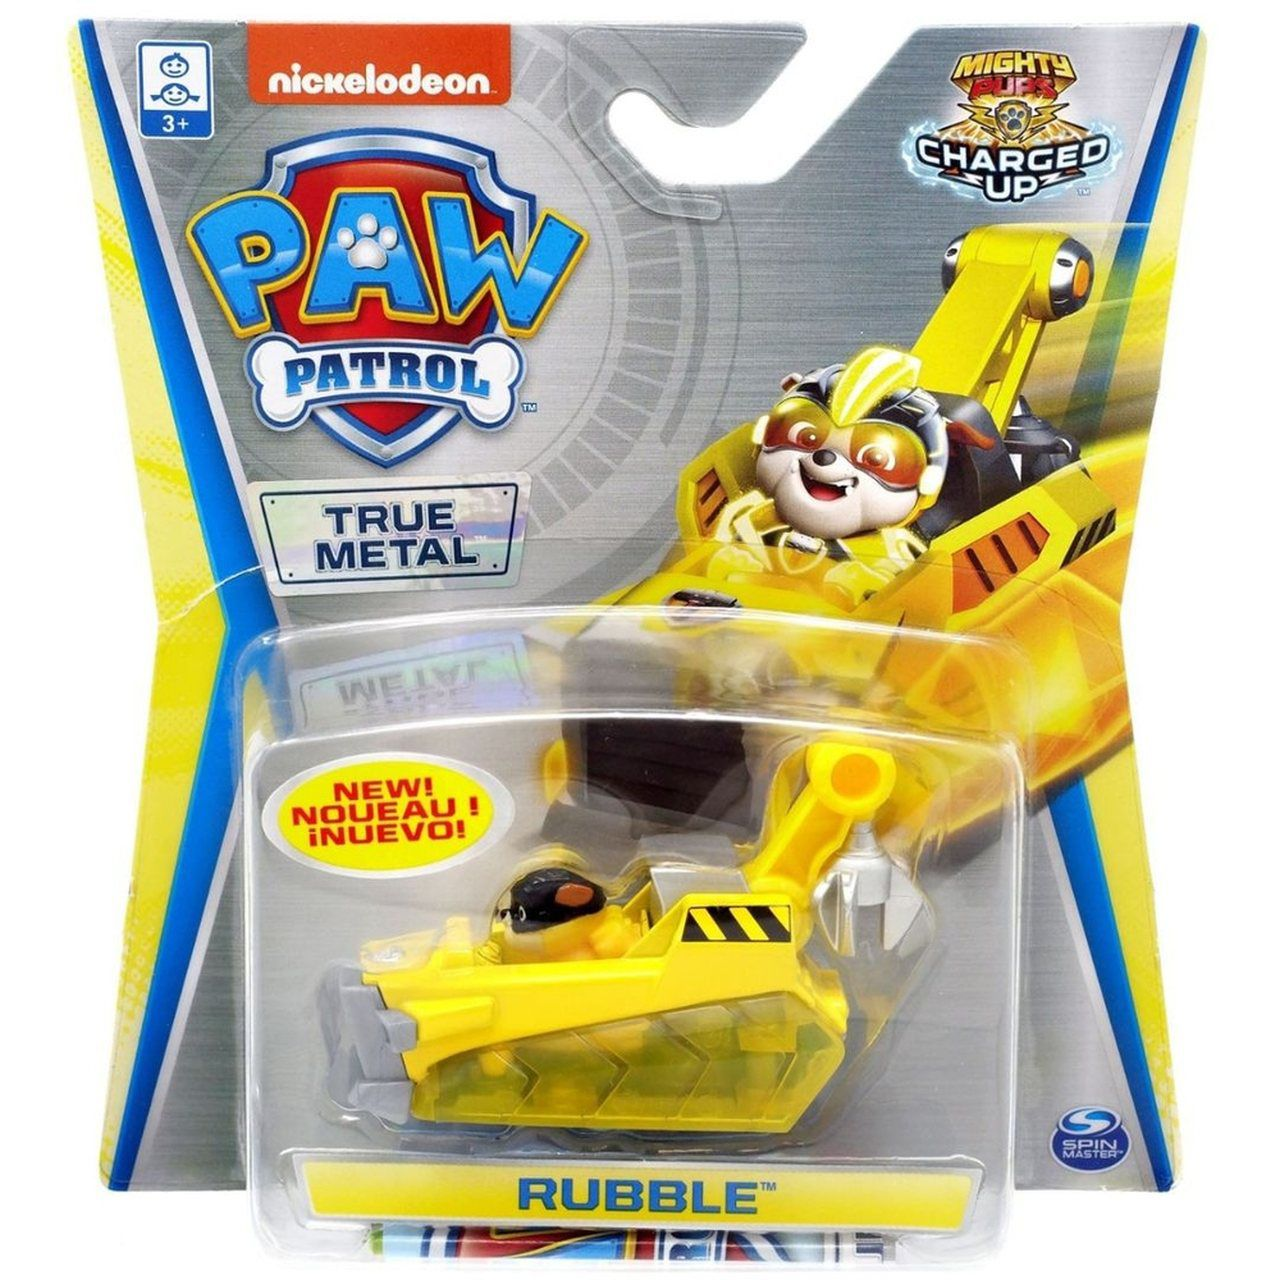 Mini Veículo Patrulha Canina (Paw Patrol) Resgate Extremo - Rubble Charged Up - Sunny